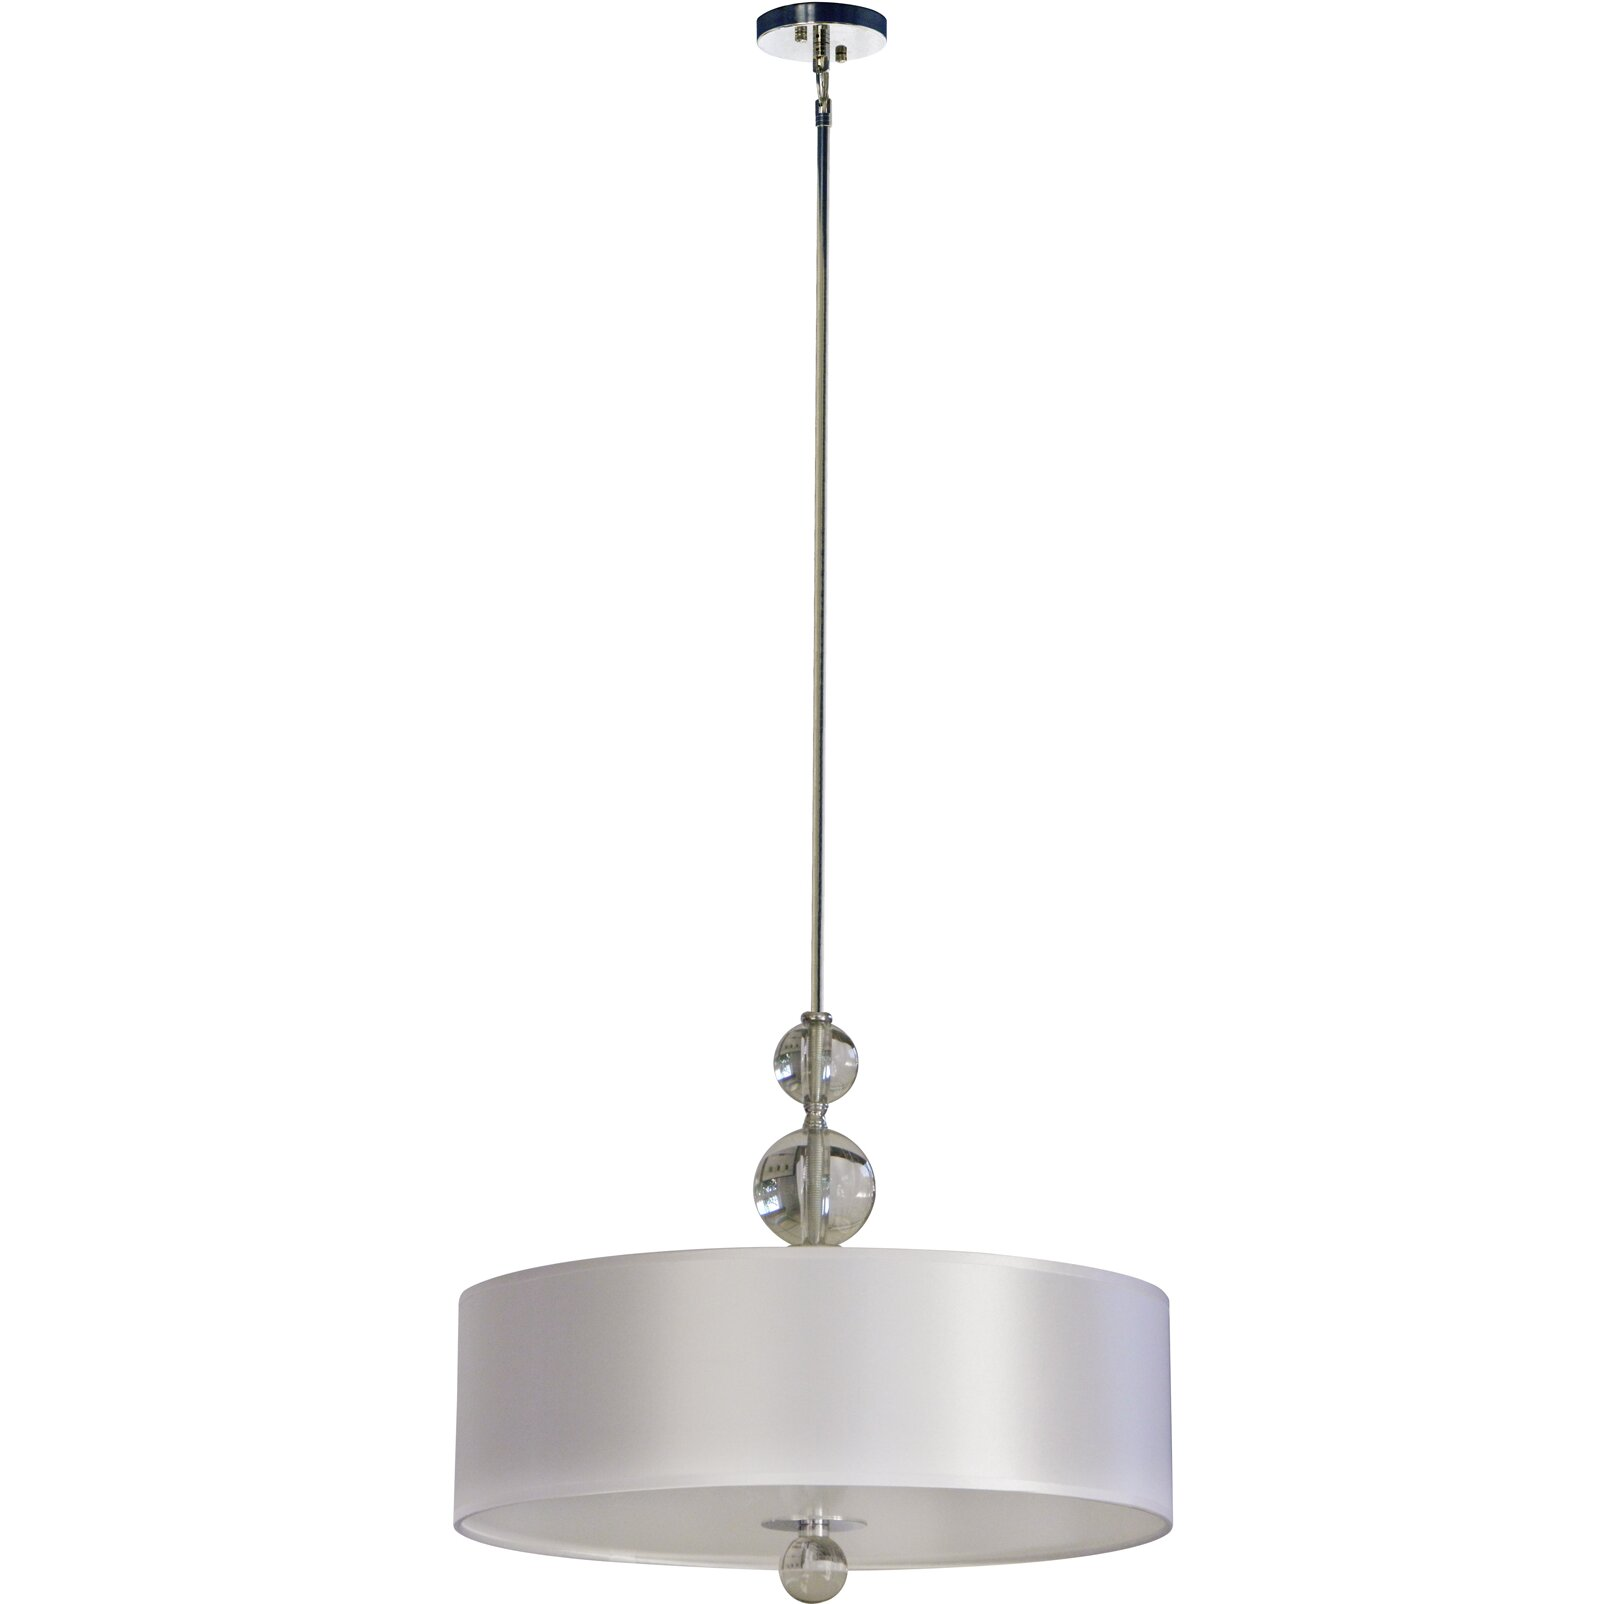 whitfield lighting charlotte 3 light drum chandelier chandeliers pendants wayfair drum lighting